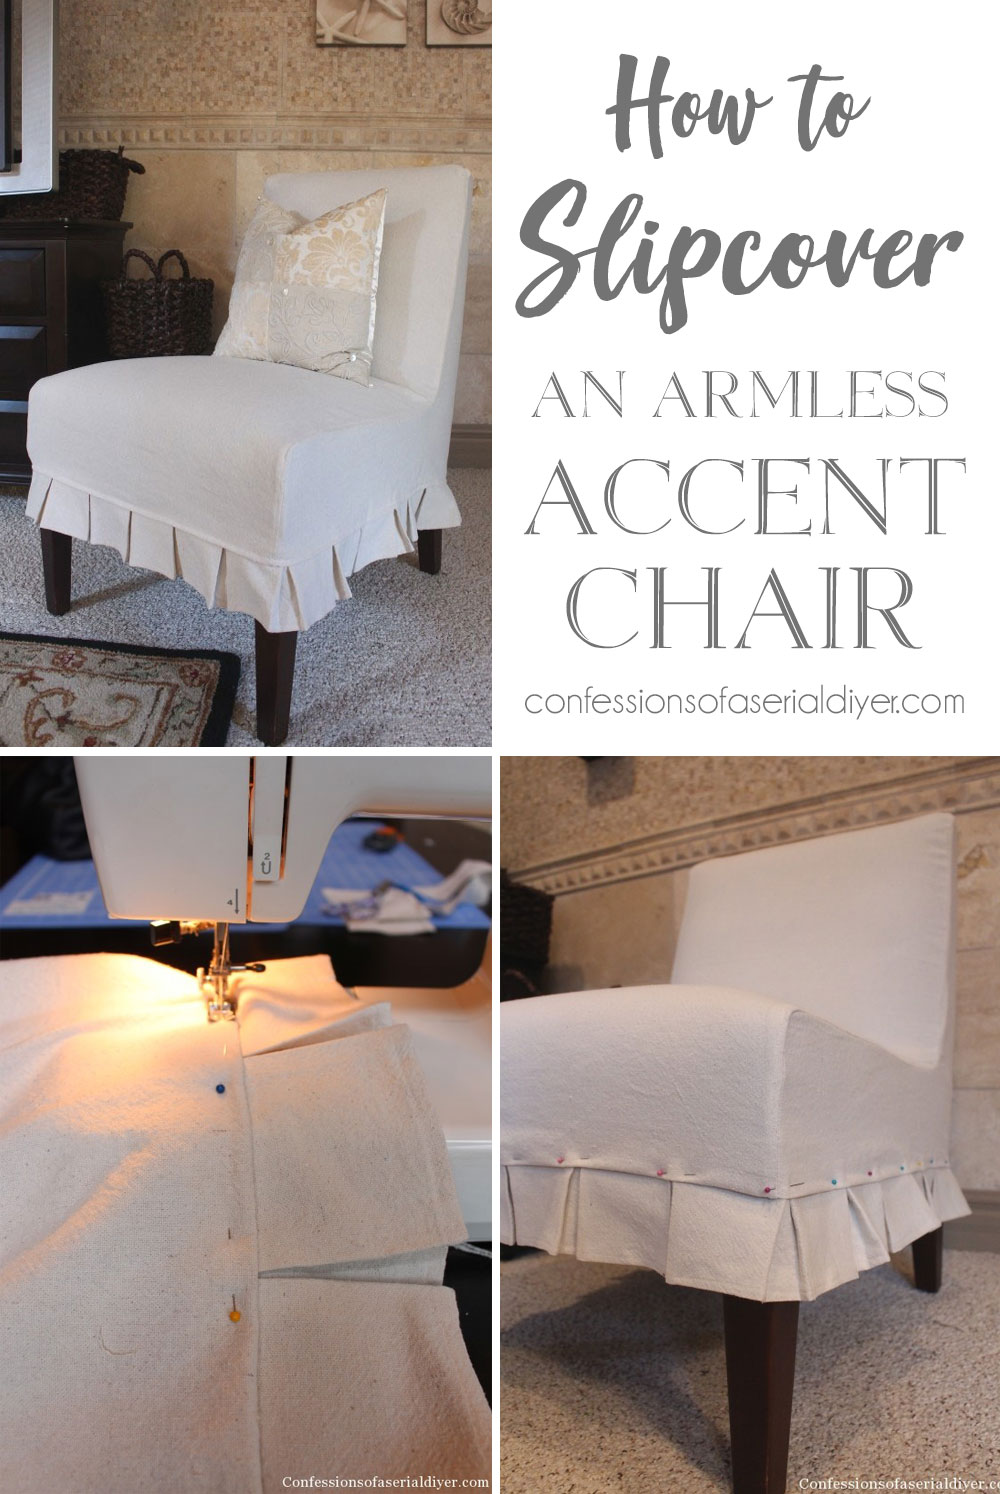 How to Slipcover an Armless Accent Chair